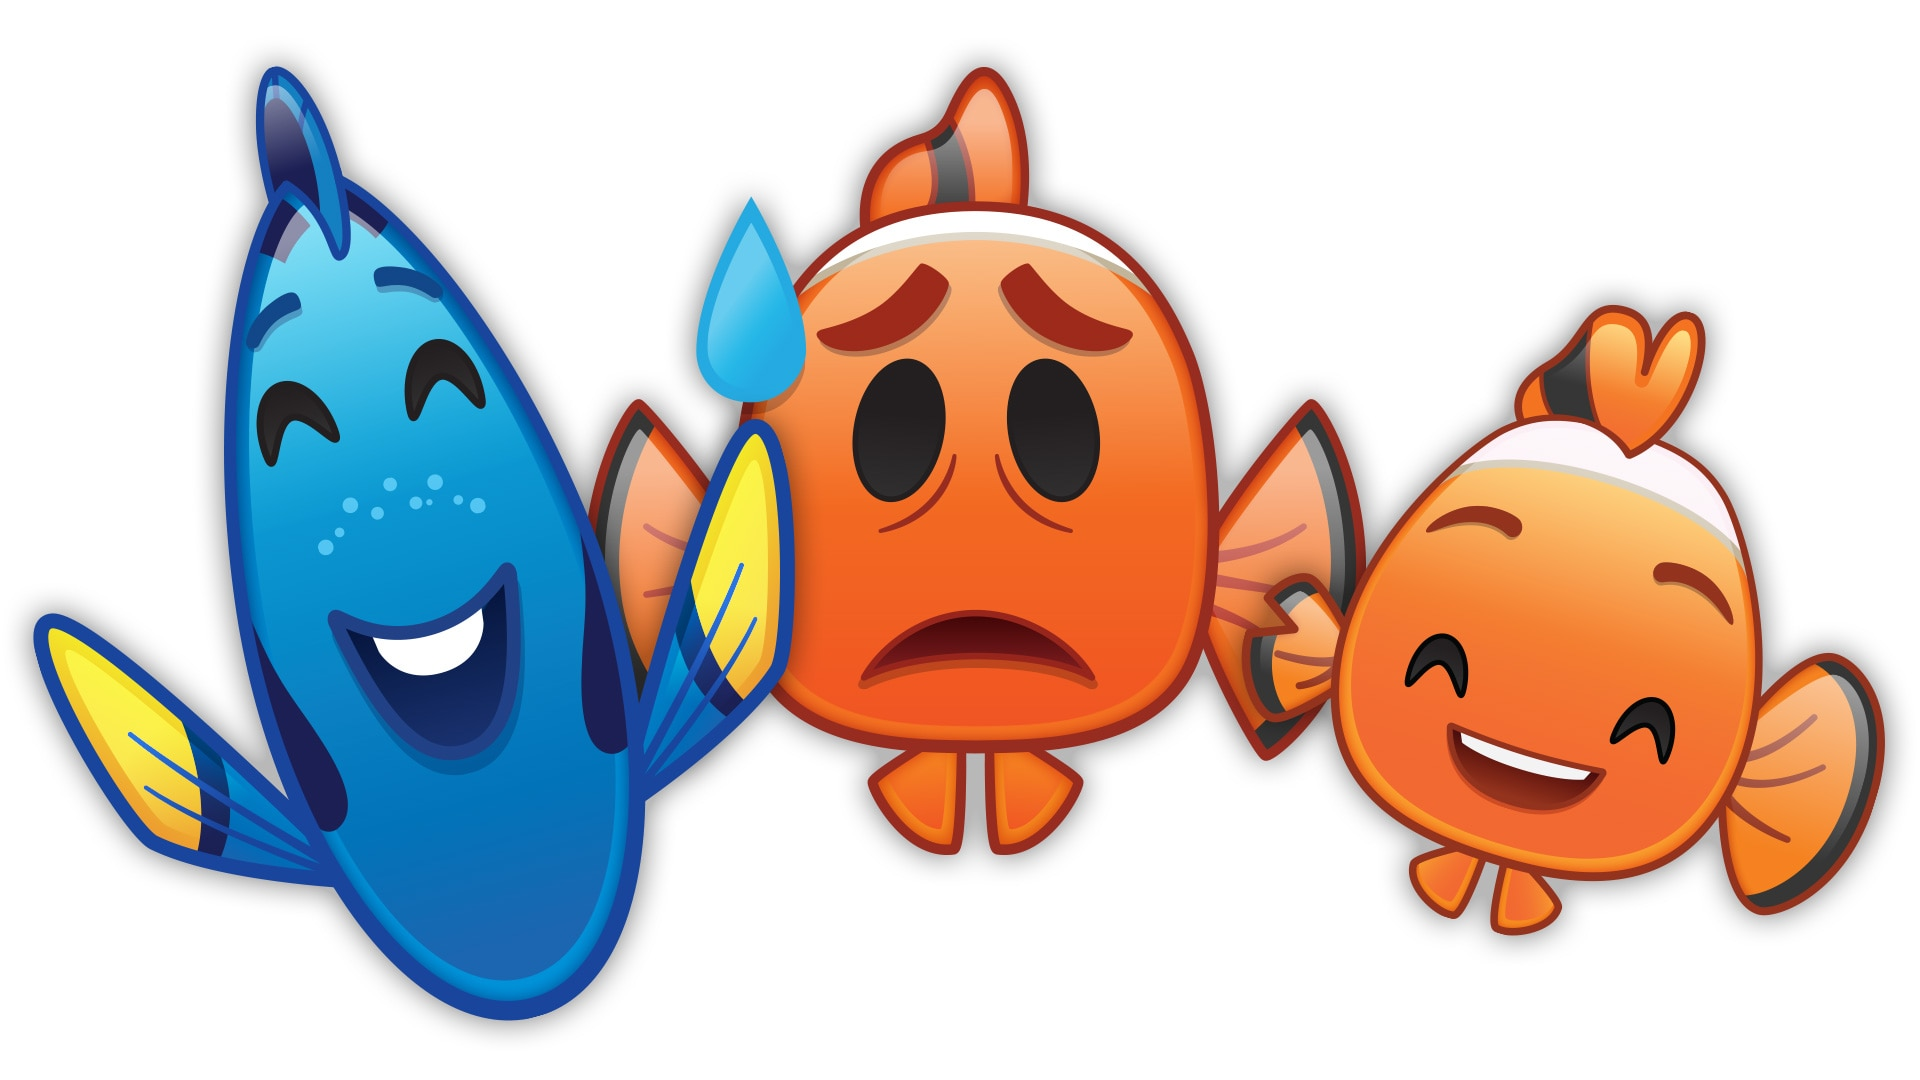 Finding Nemo - As Told by Emoji